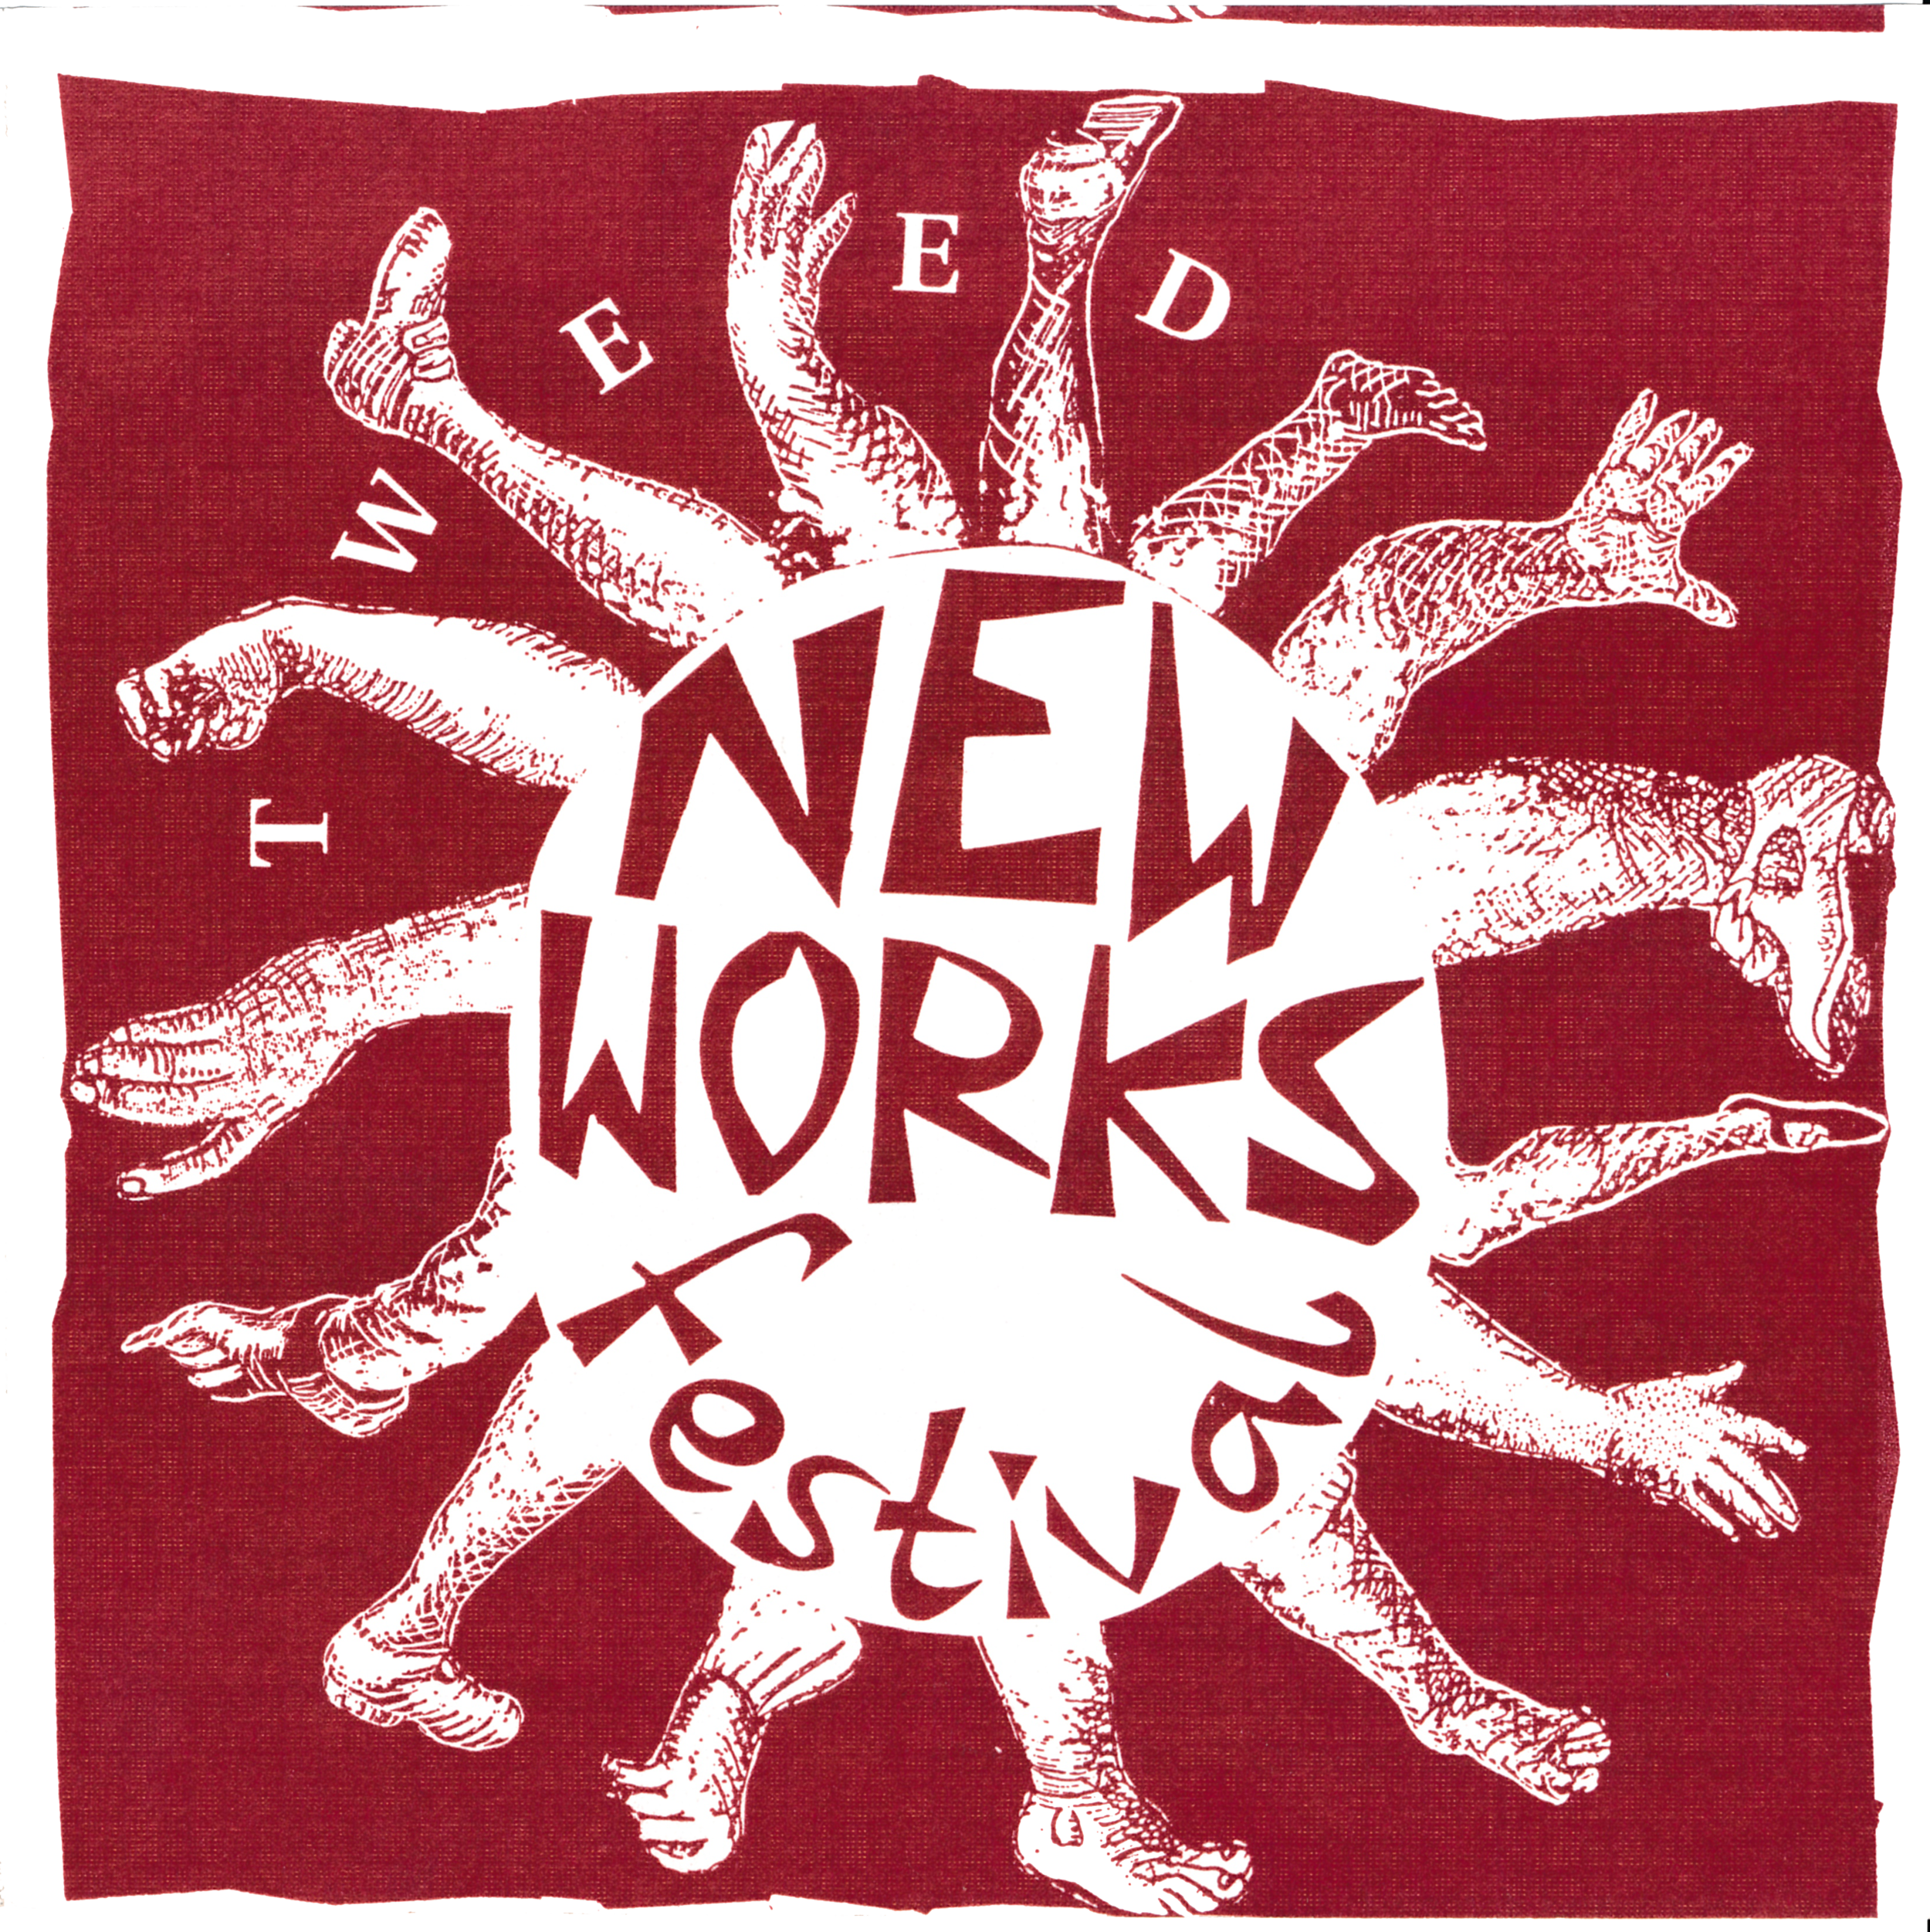 NEW WORKS FESTIVAL #8, 1992 - OHIO THEATERAnohni (of Antony & The Johnsons), Fiona Blue: She's So BlueSally Gross & Company, A Night at the OhioAmiele Malale Dance, Too Young to KnowJames Adlesic, PinocchioWarren Muller, My Blue Eyed SonIncollusion, All That GlittersJoshua Fried, TravelogueDavid McGrath, MeltingColleen O'Neill, Julia Wonder: Let Me Change Your LifeDoug Holsclaw, Don't Make Me Say Things That Will Hurt YouPiotr Uklanski, InstallationBiello and Martin, Breakthrough